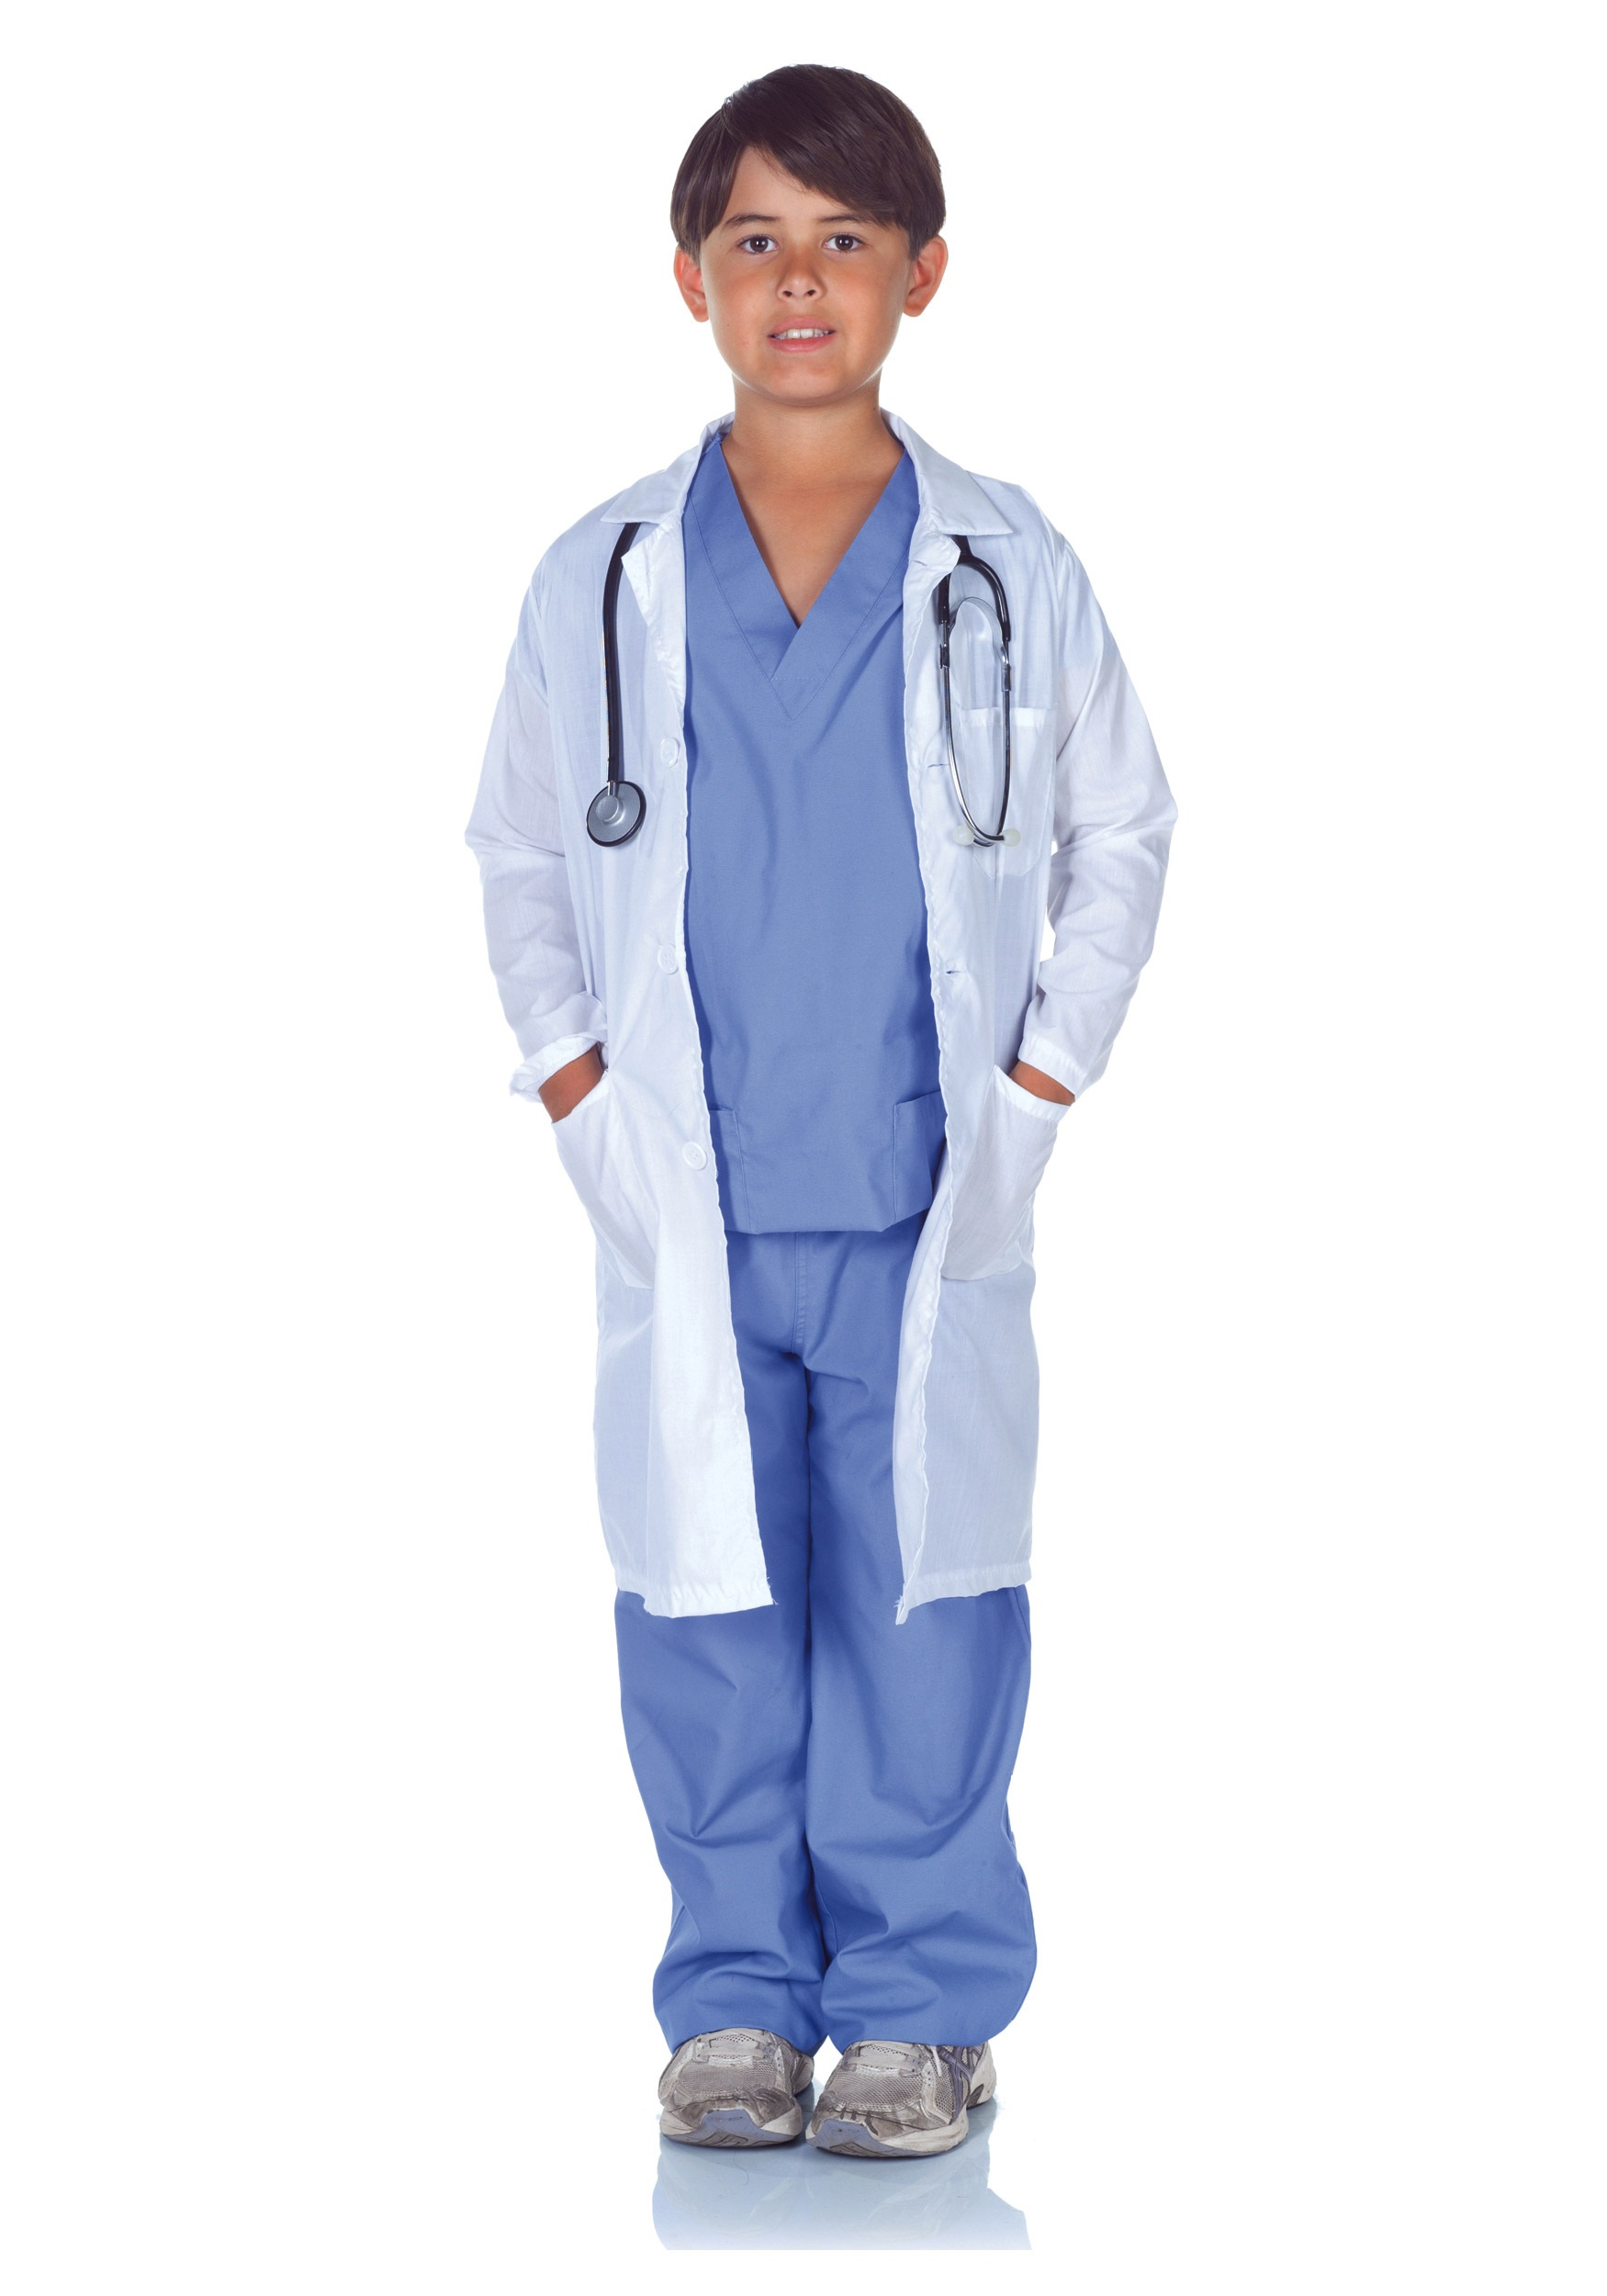 doctor kid Child Doctor Scrubs with Labcoat